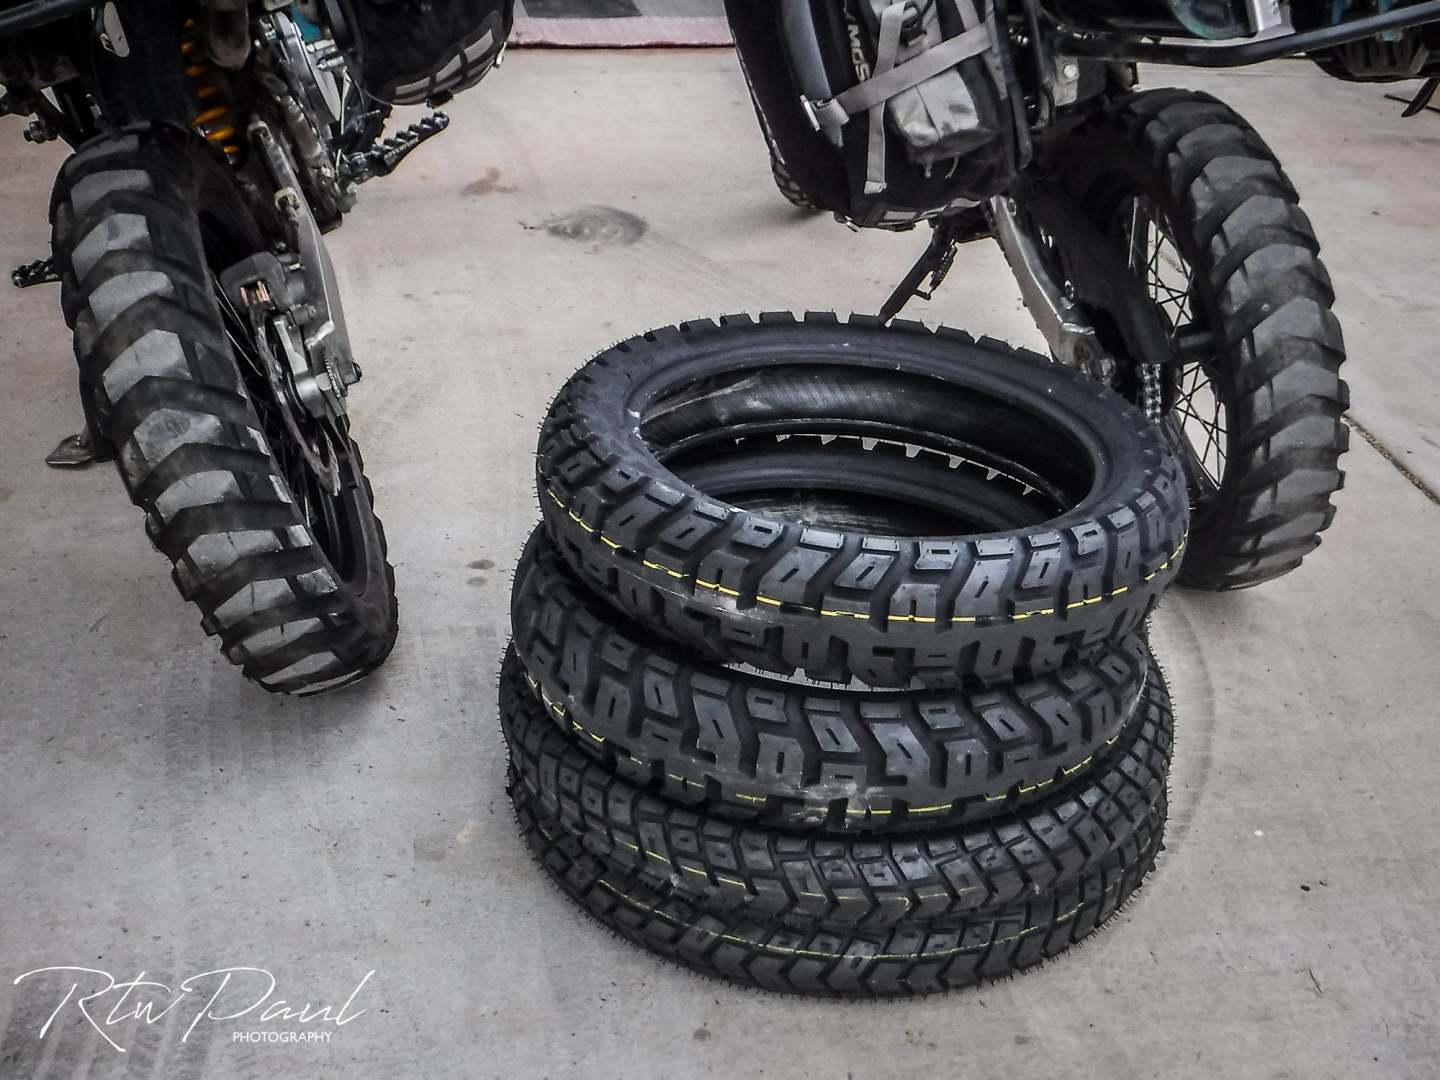 Adventure tires – 'my personal experiences' | rtwPaul